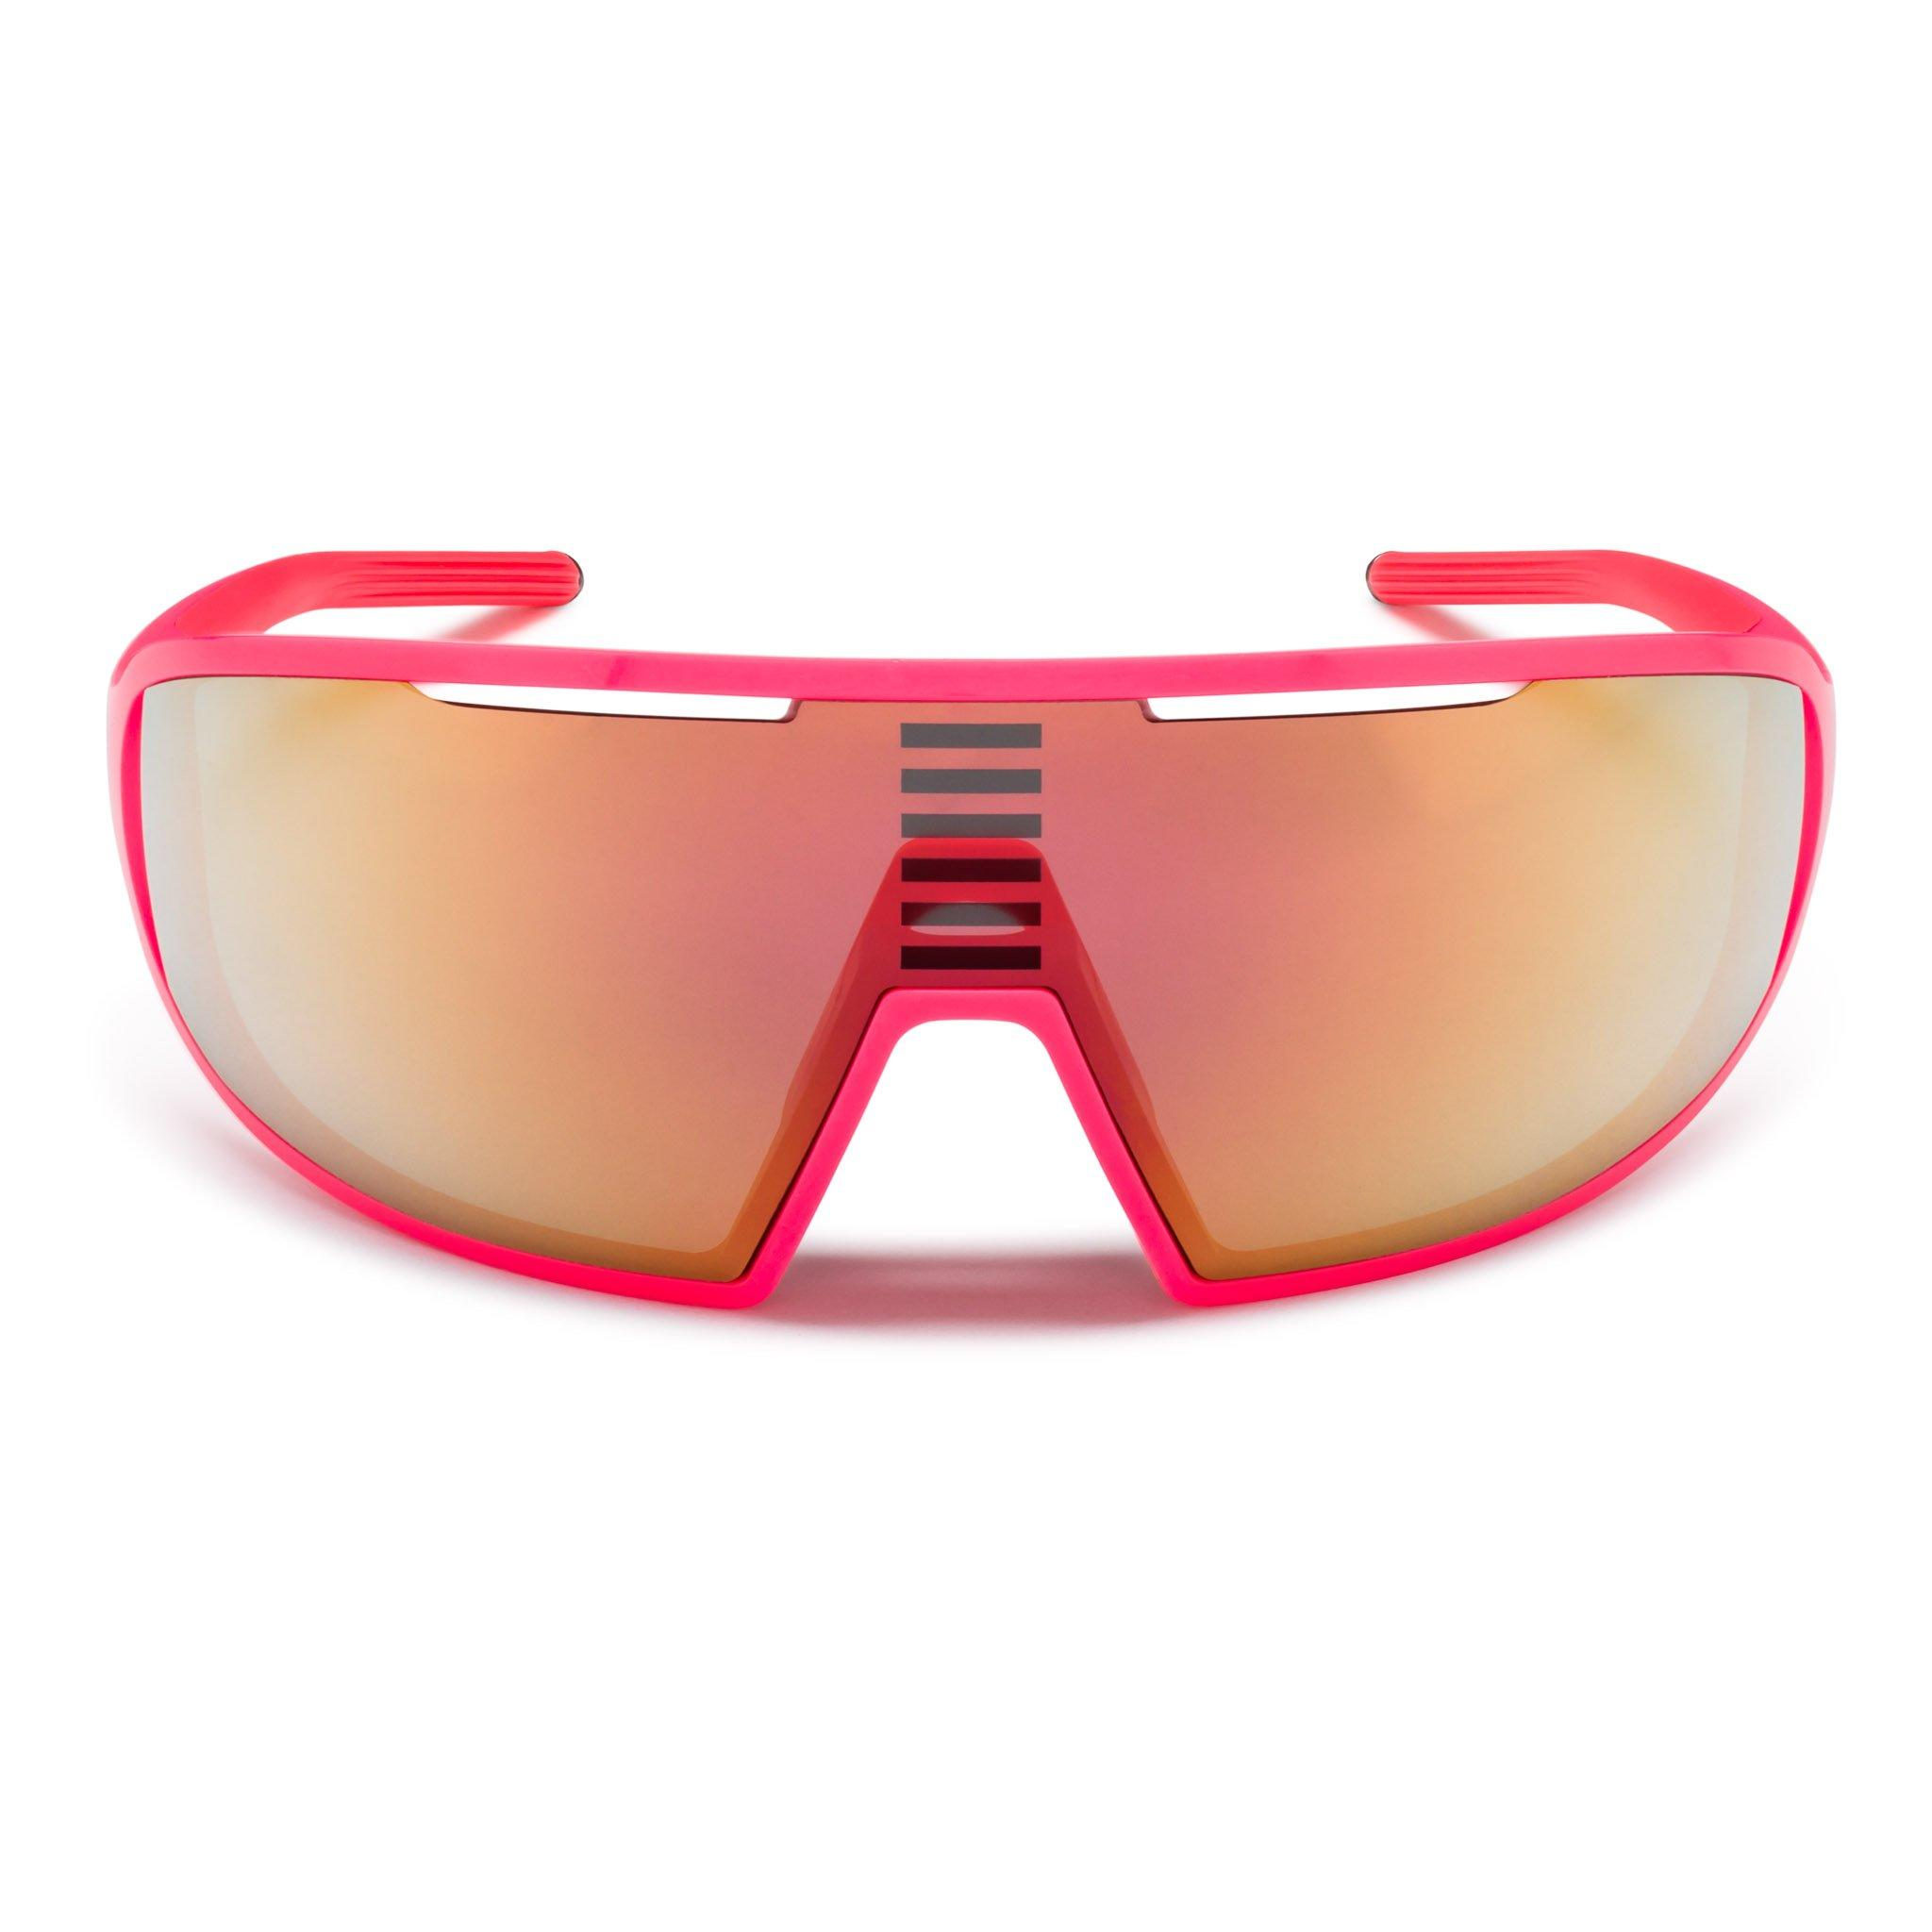 Cycling Glasses | Interchangeable Lens Eyewear - our Best on-bike ...